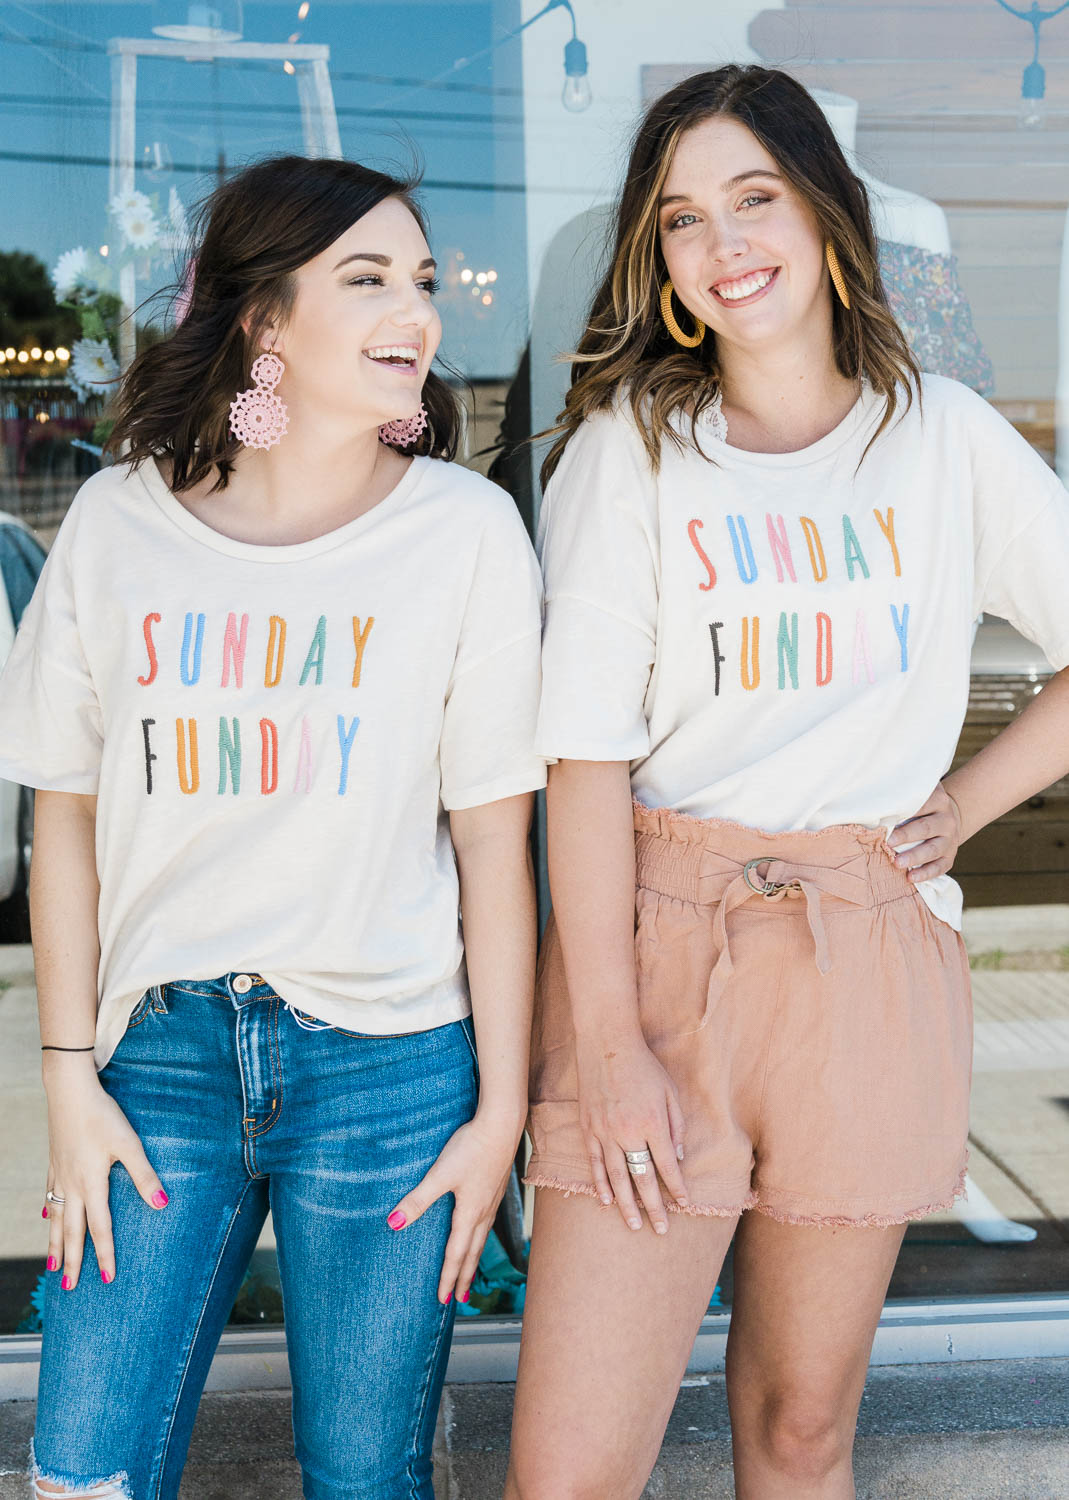 Sunday Funday Blank Page Top